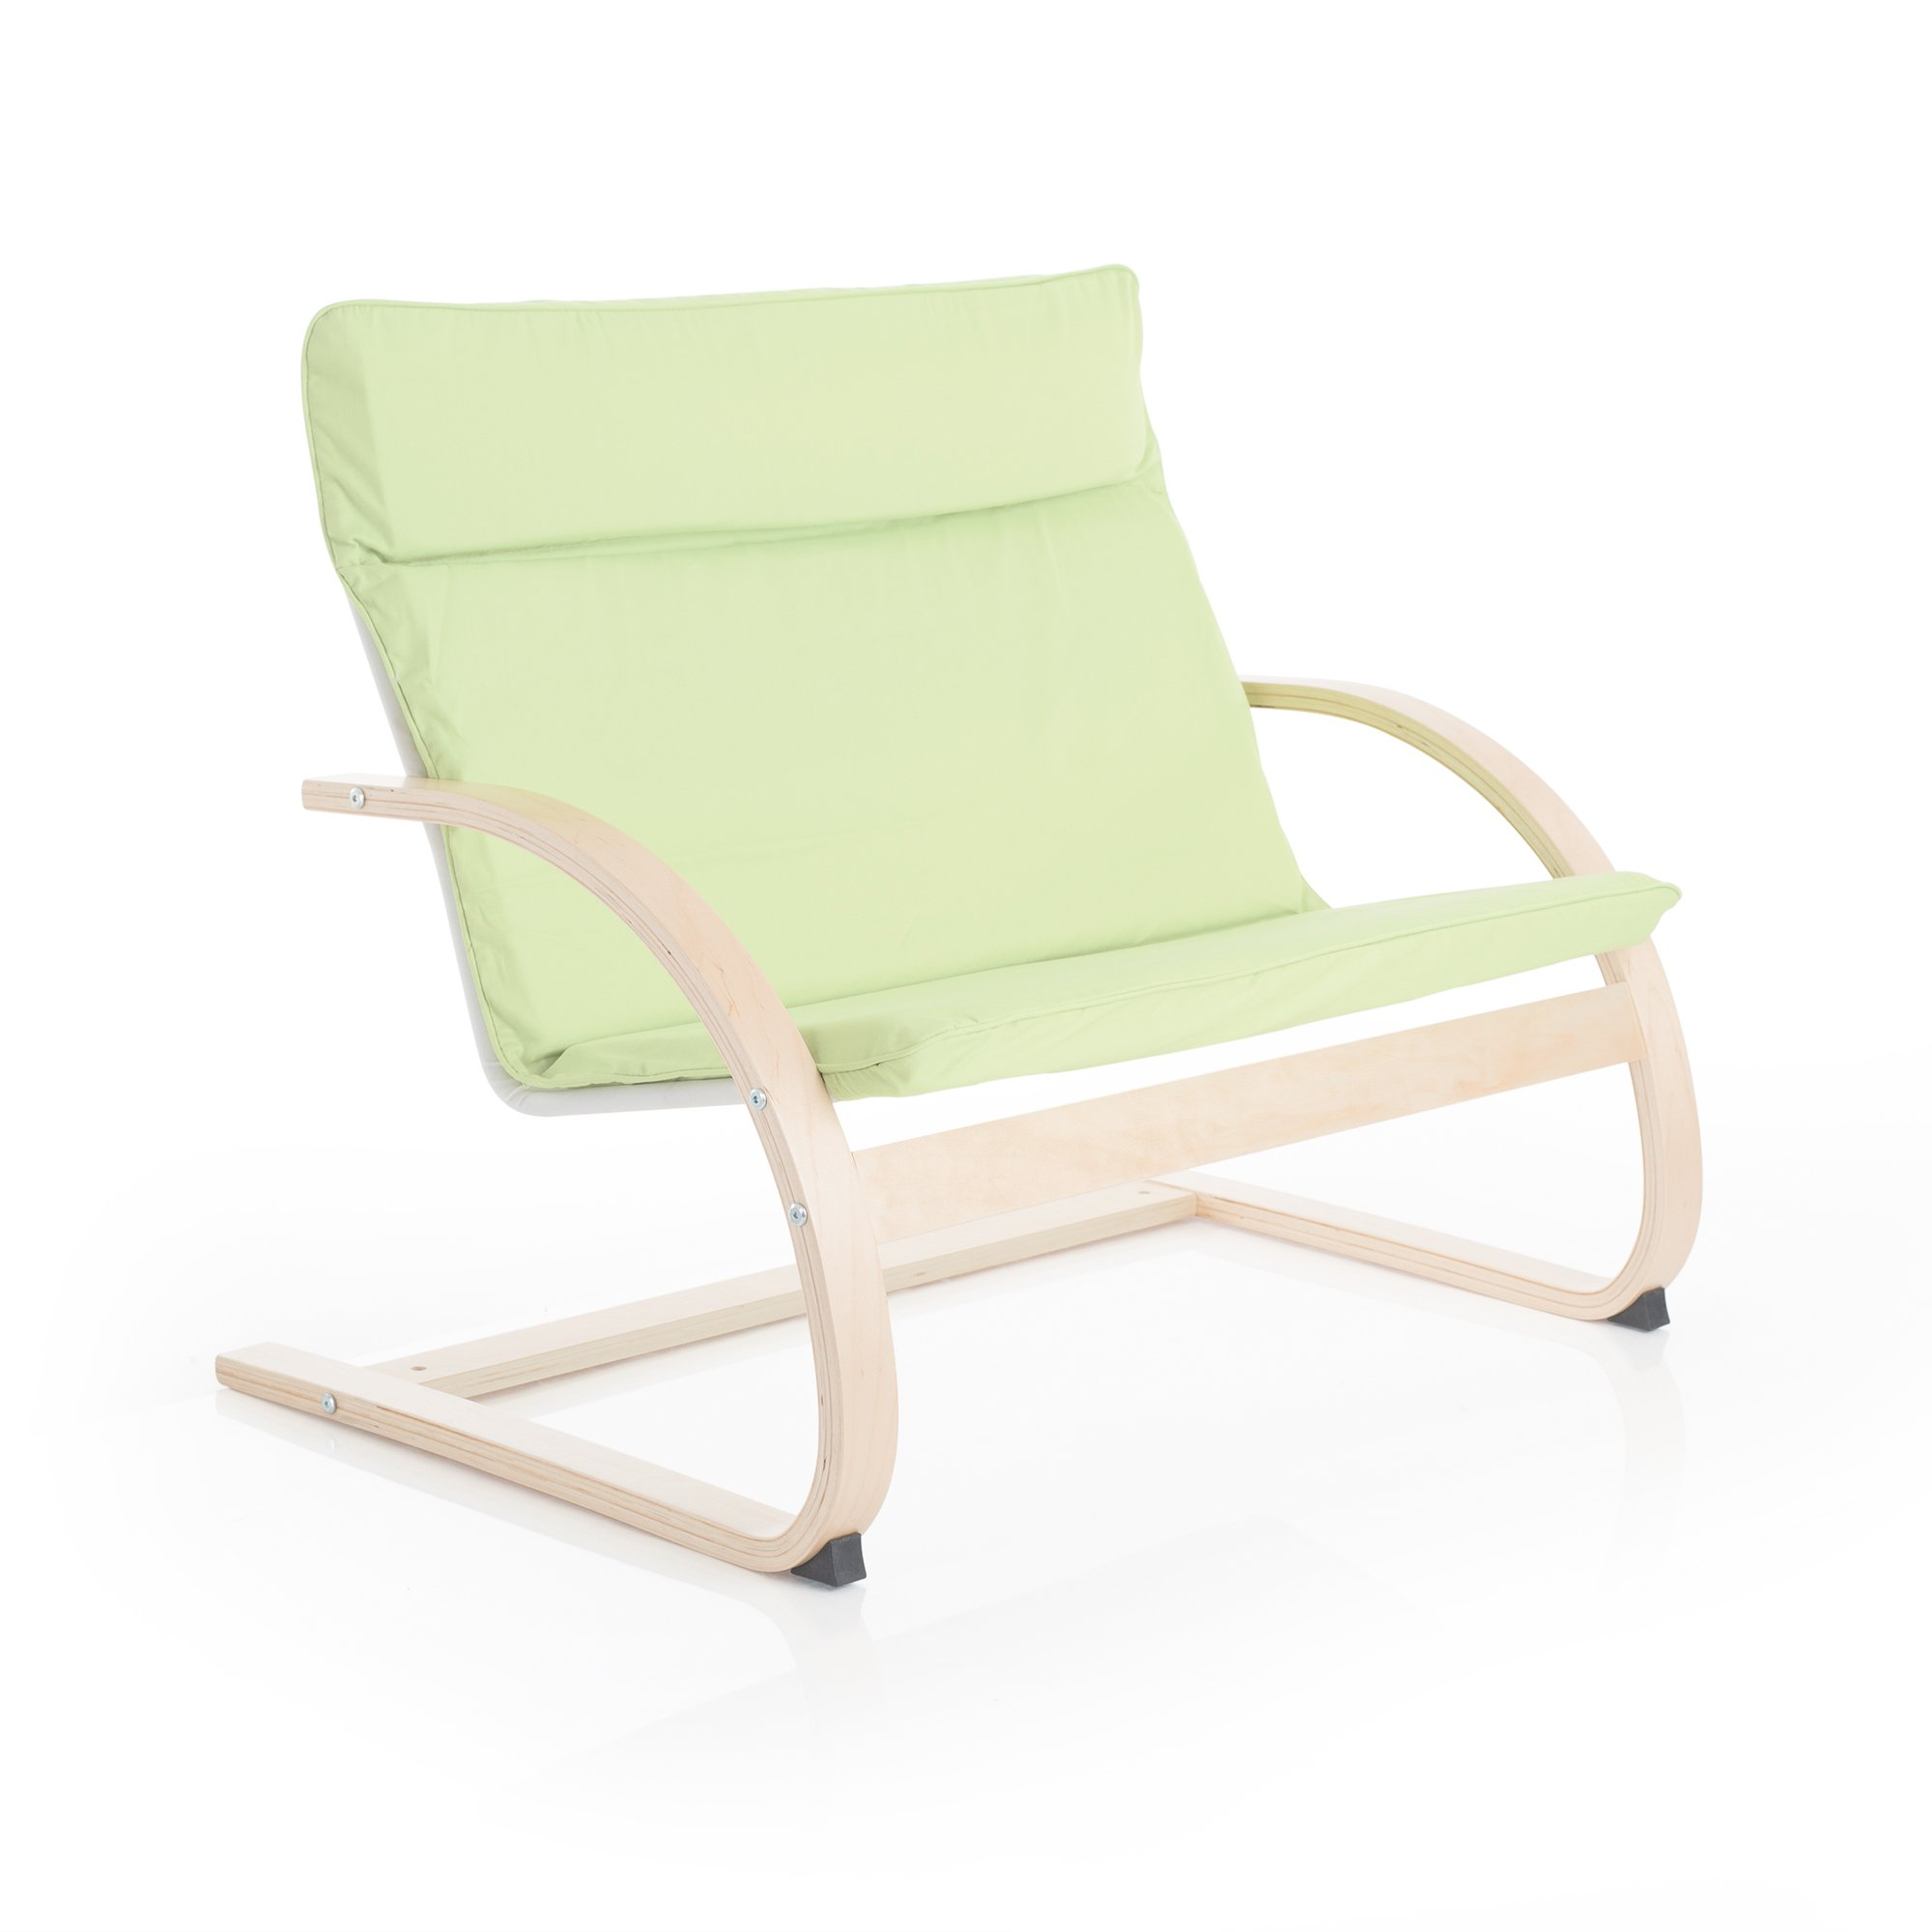 Guidecraft Nordic Couch - Light Green: Rocker Couch For Toddlers, Kids Room & Classroom Furniture, School Chair